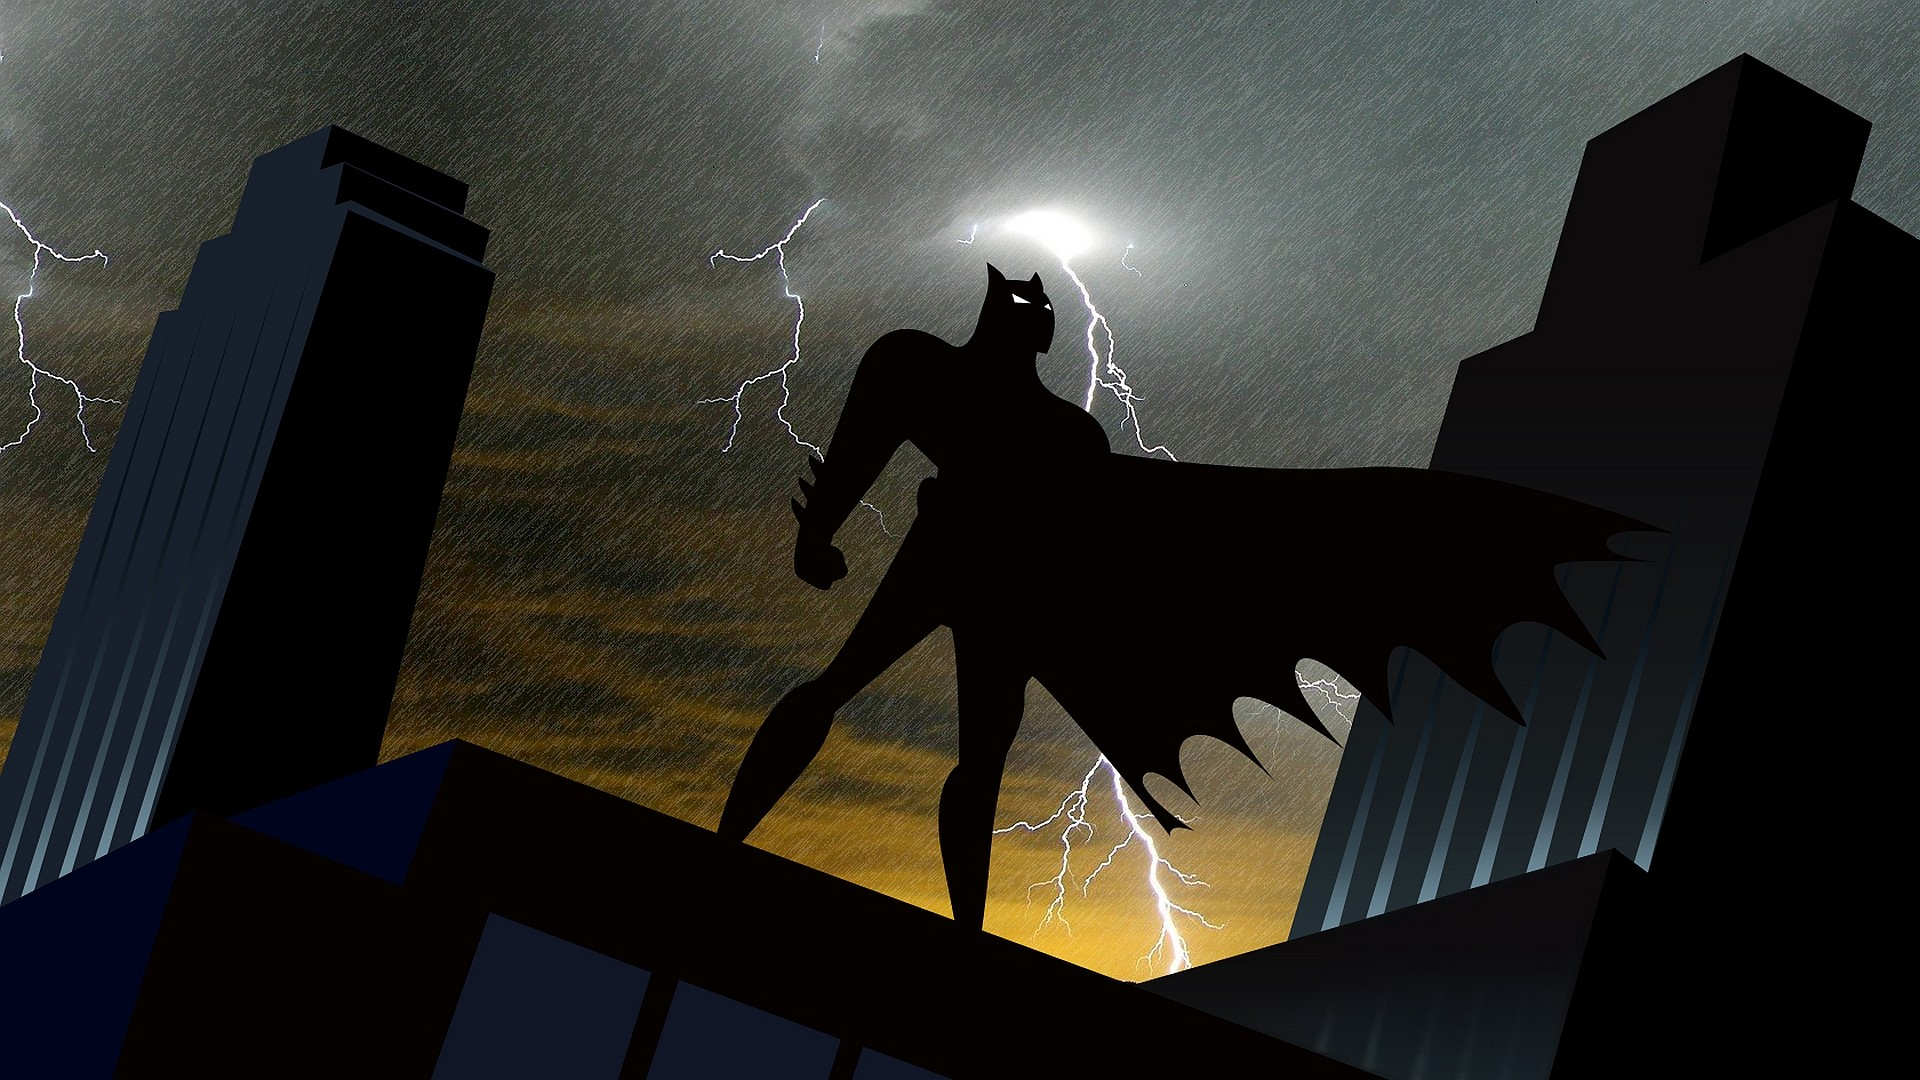 1920x1080 14 Batman: The Animated Series HD Wallpapers | Backgrounds - Wallpaper Abyss